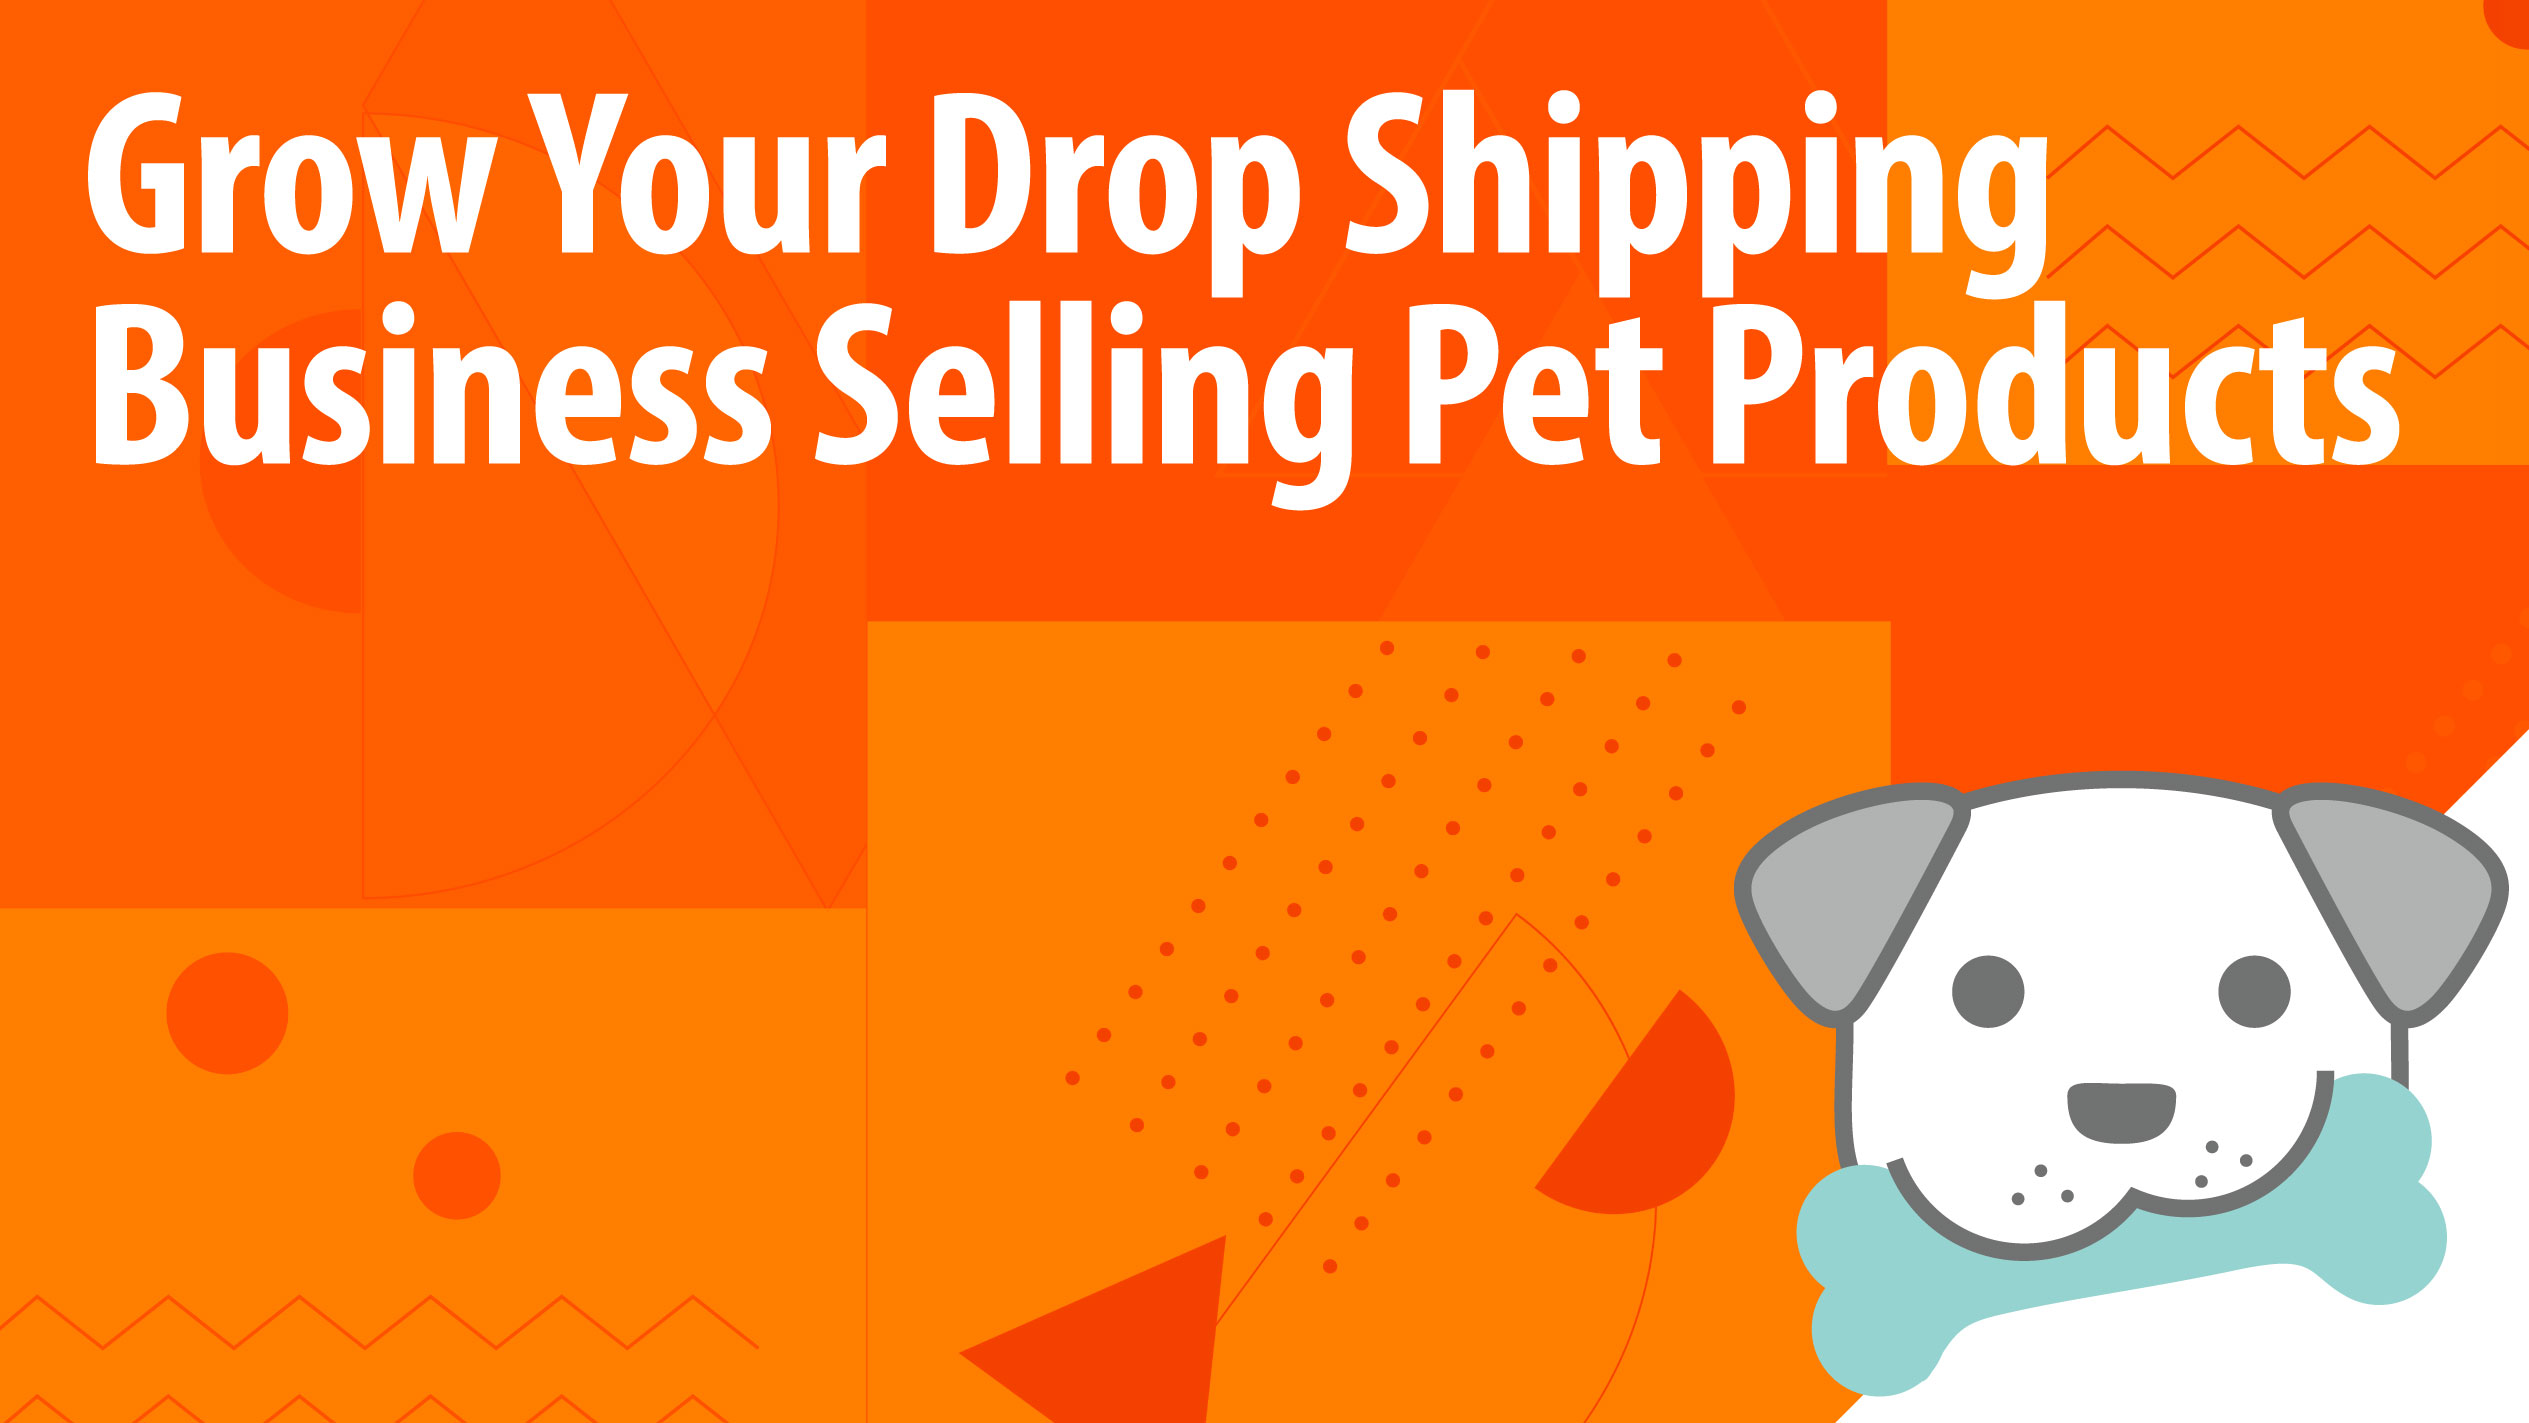 Grow Your Drop Shipping Business Selling Pet Products